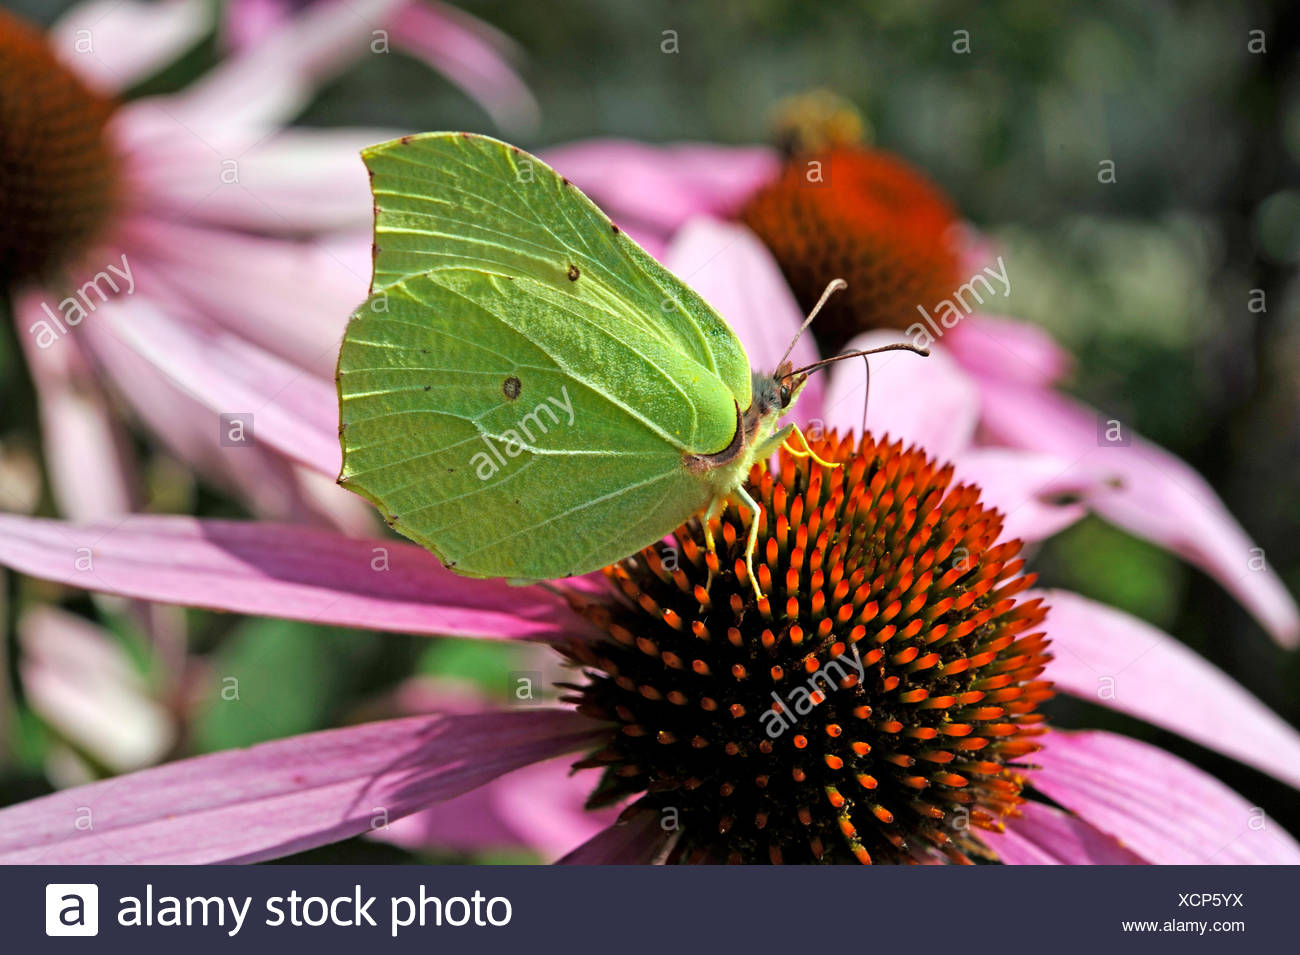 Brimstone butterfly lowering the proboscis in the tongue blossoms of a purple coneflower, also Rudbeckia, in the patch of a cottage garden - Stock Image